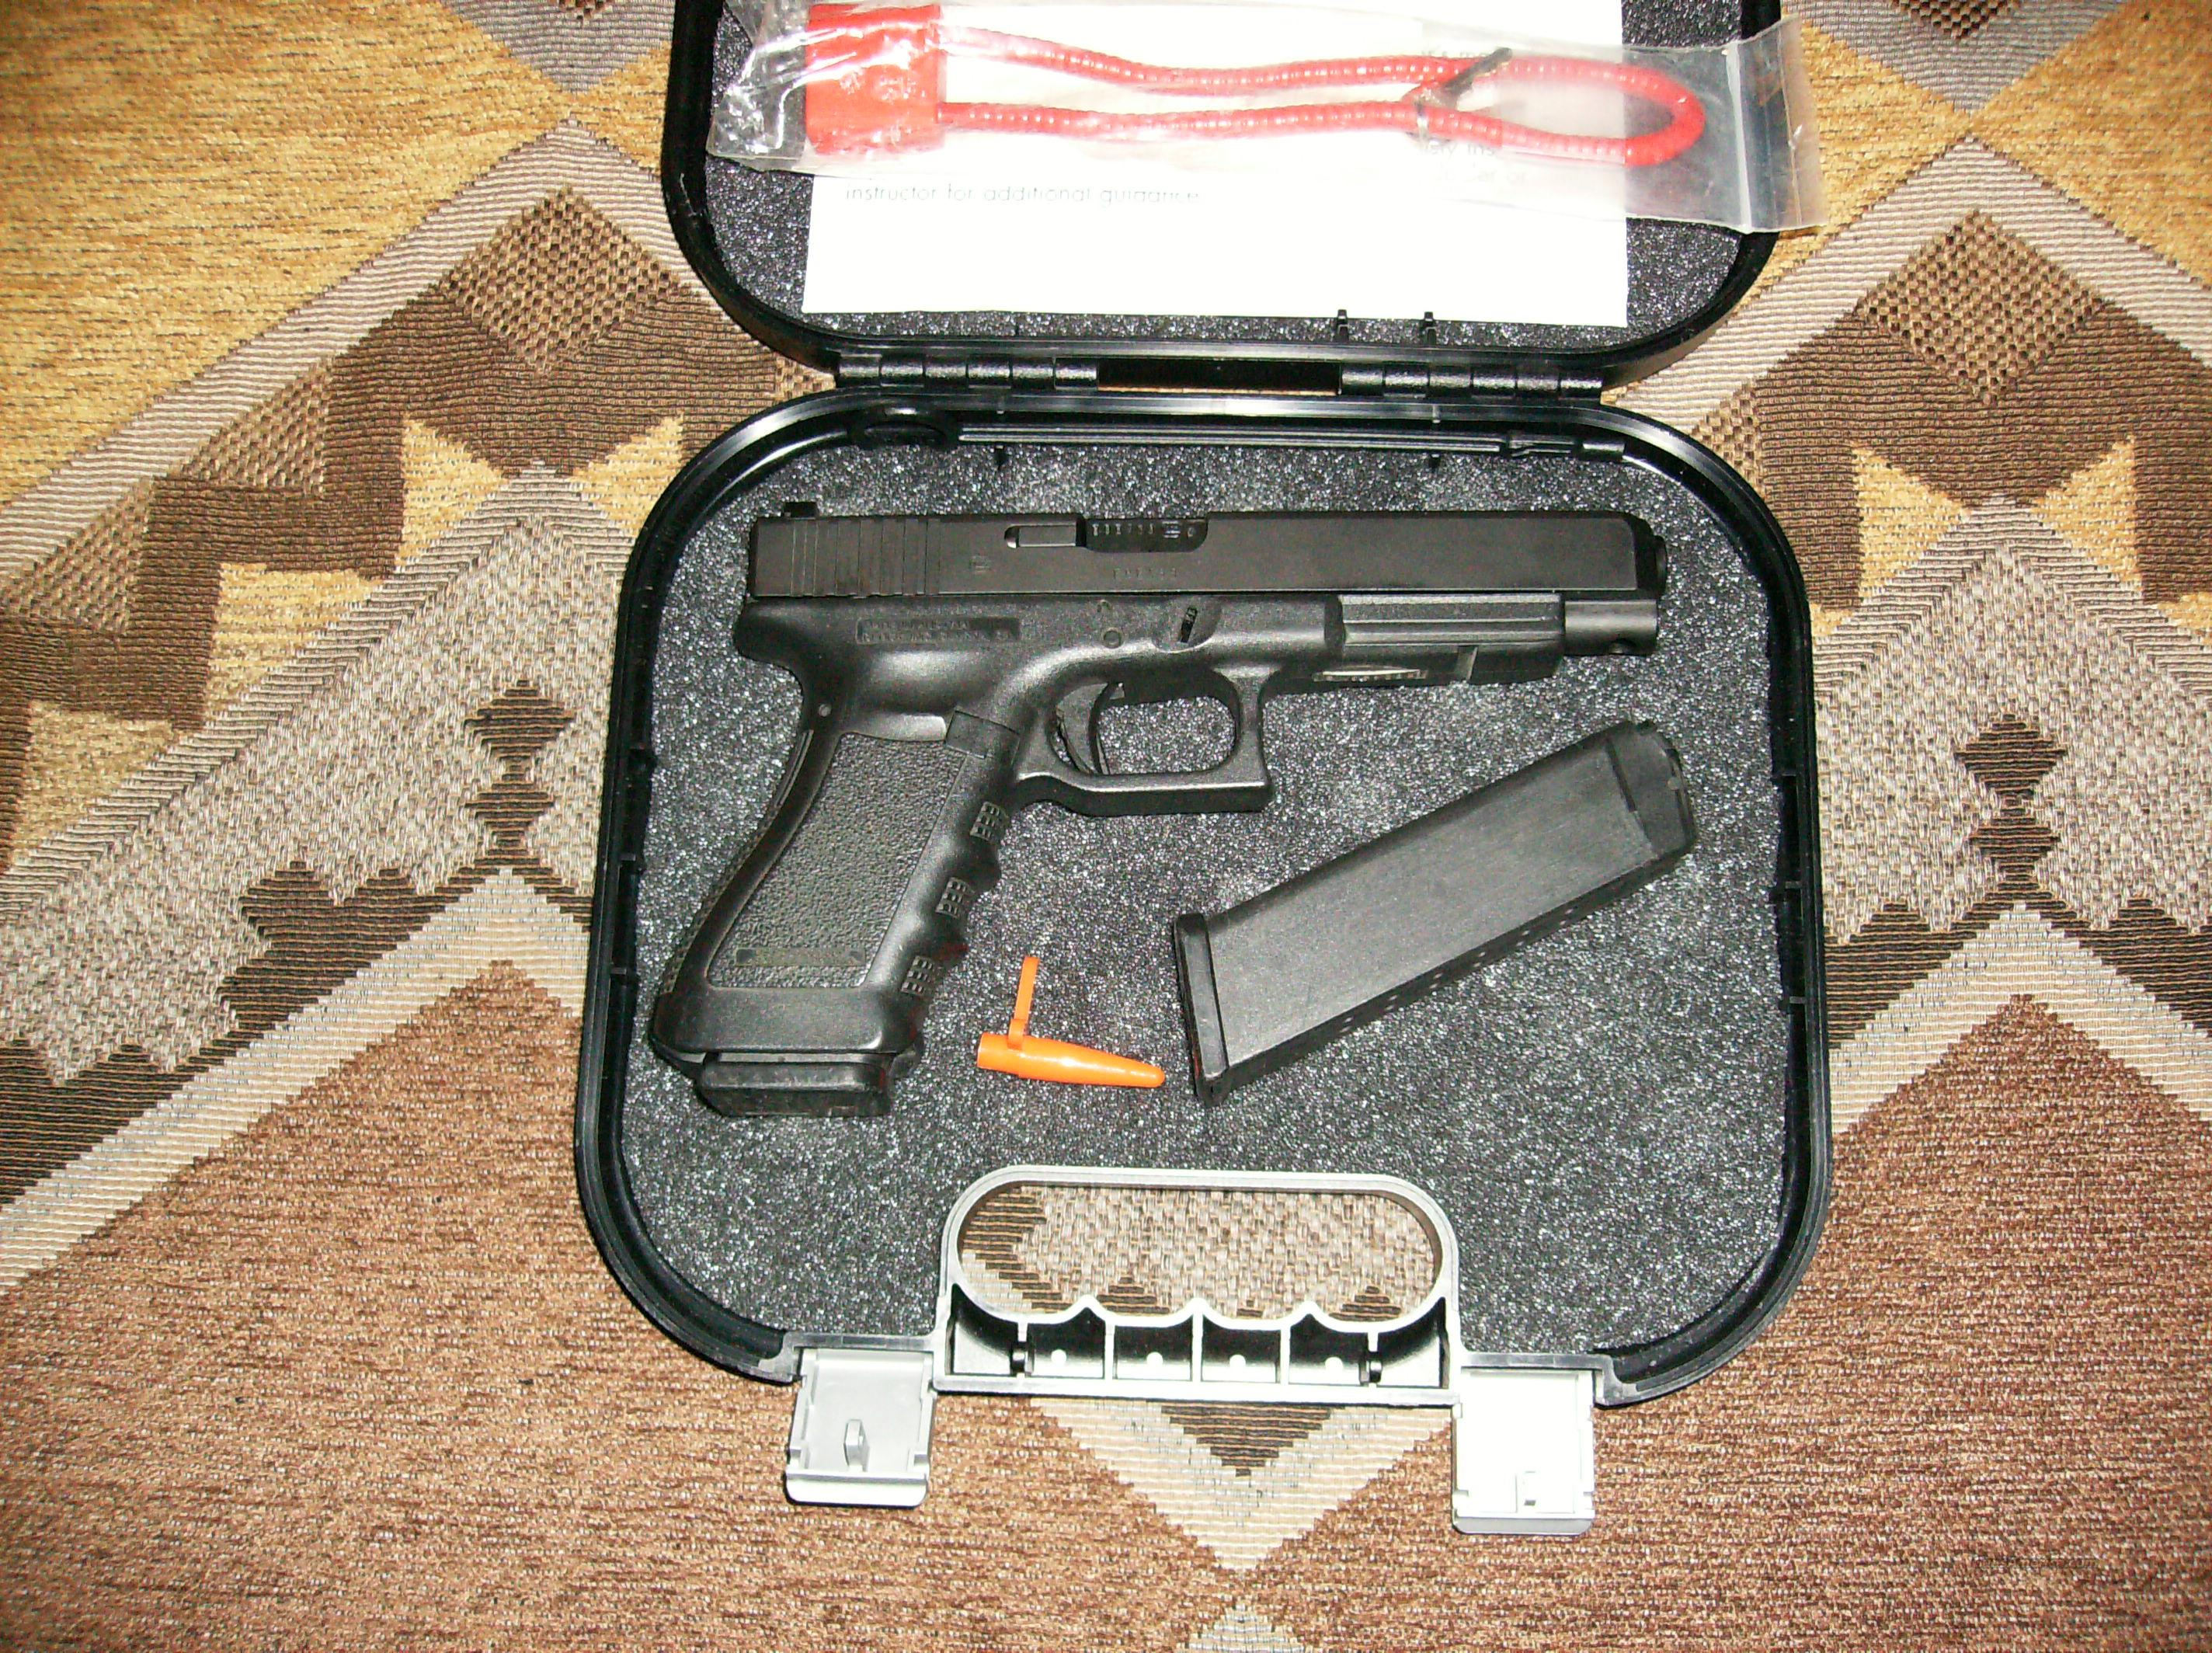 Glock 35 Tactical with Night Sights  Guns > Pistols > Glock Pistols > 35